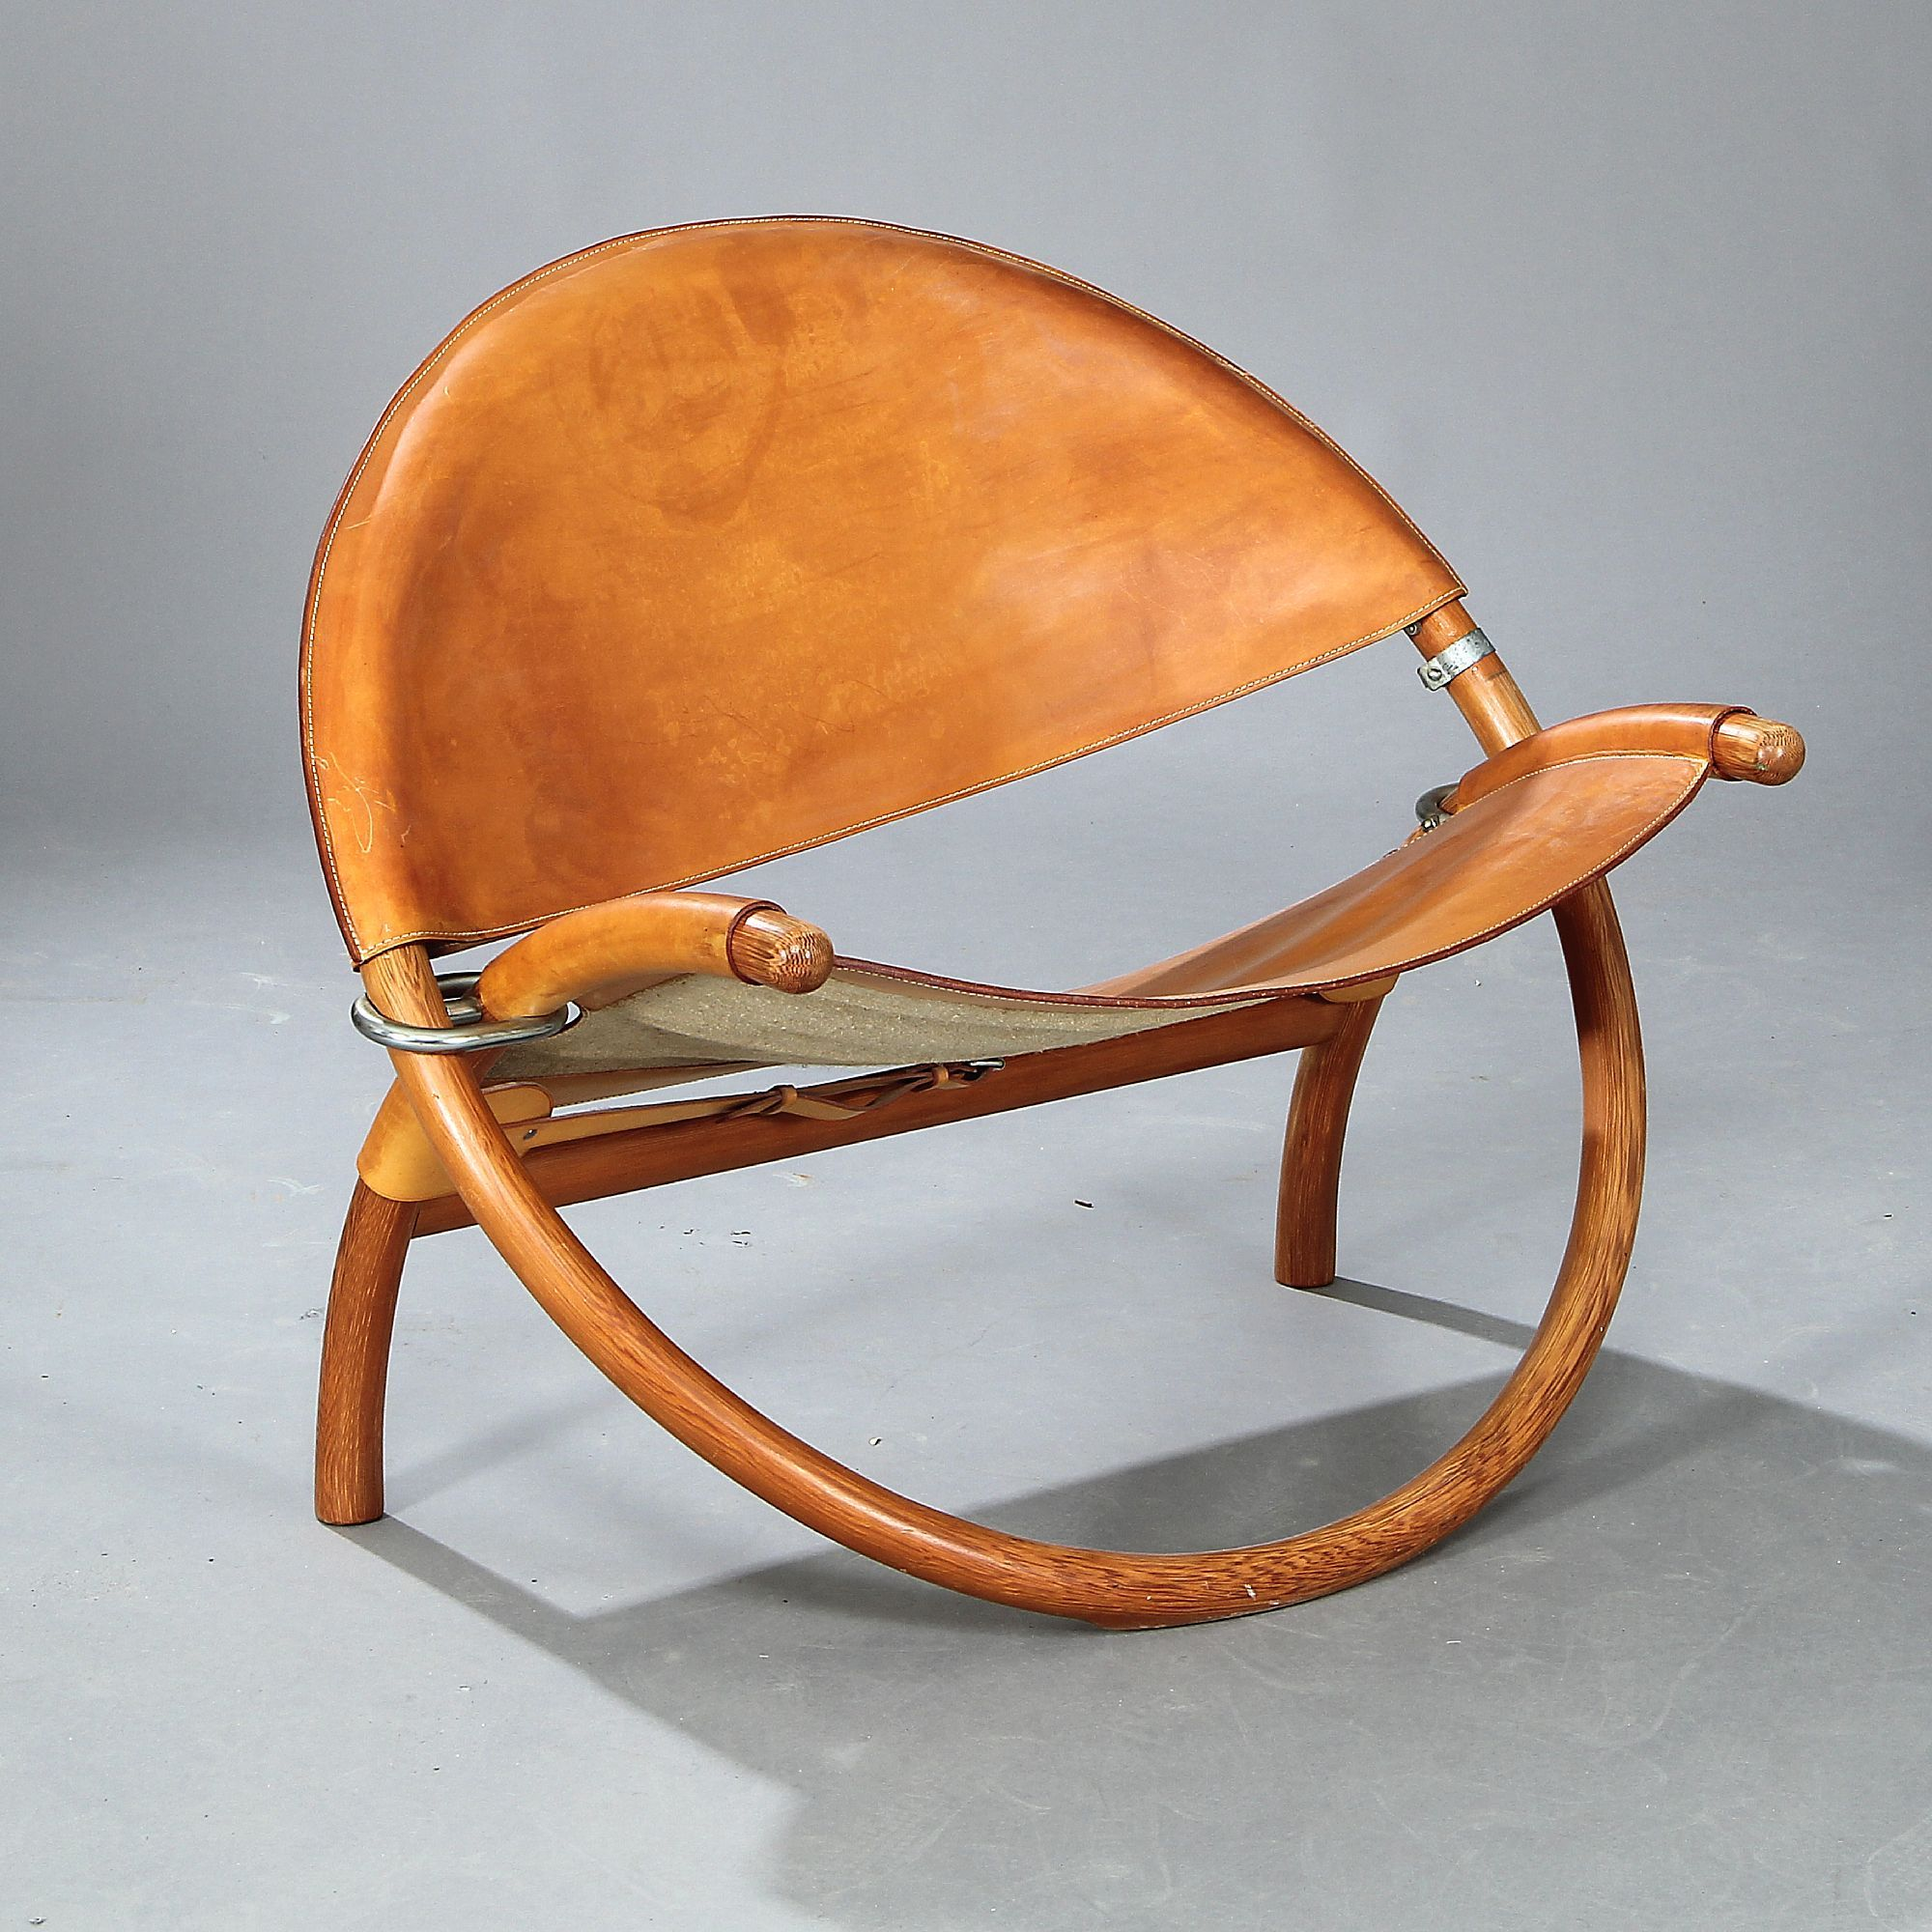 Tremendous 1323 9150 Jorgen Hovelskov An Extremly Rare Circle Chair Caraccident5 Cool Chair Designs And Ideas Caraccident5Info